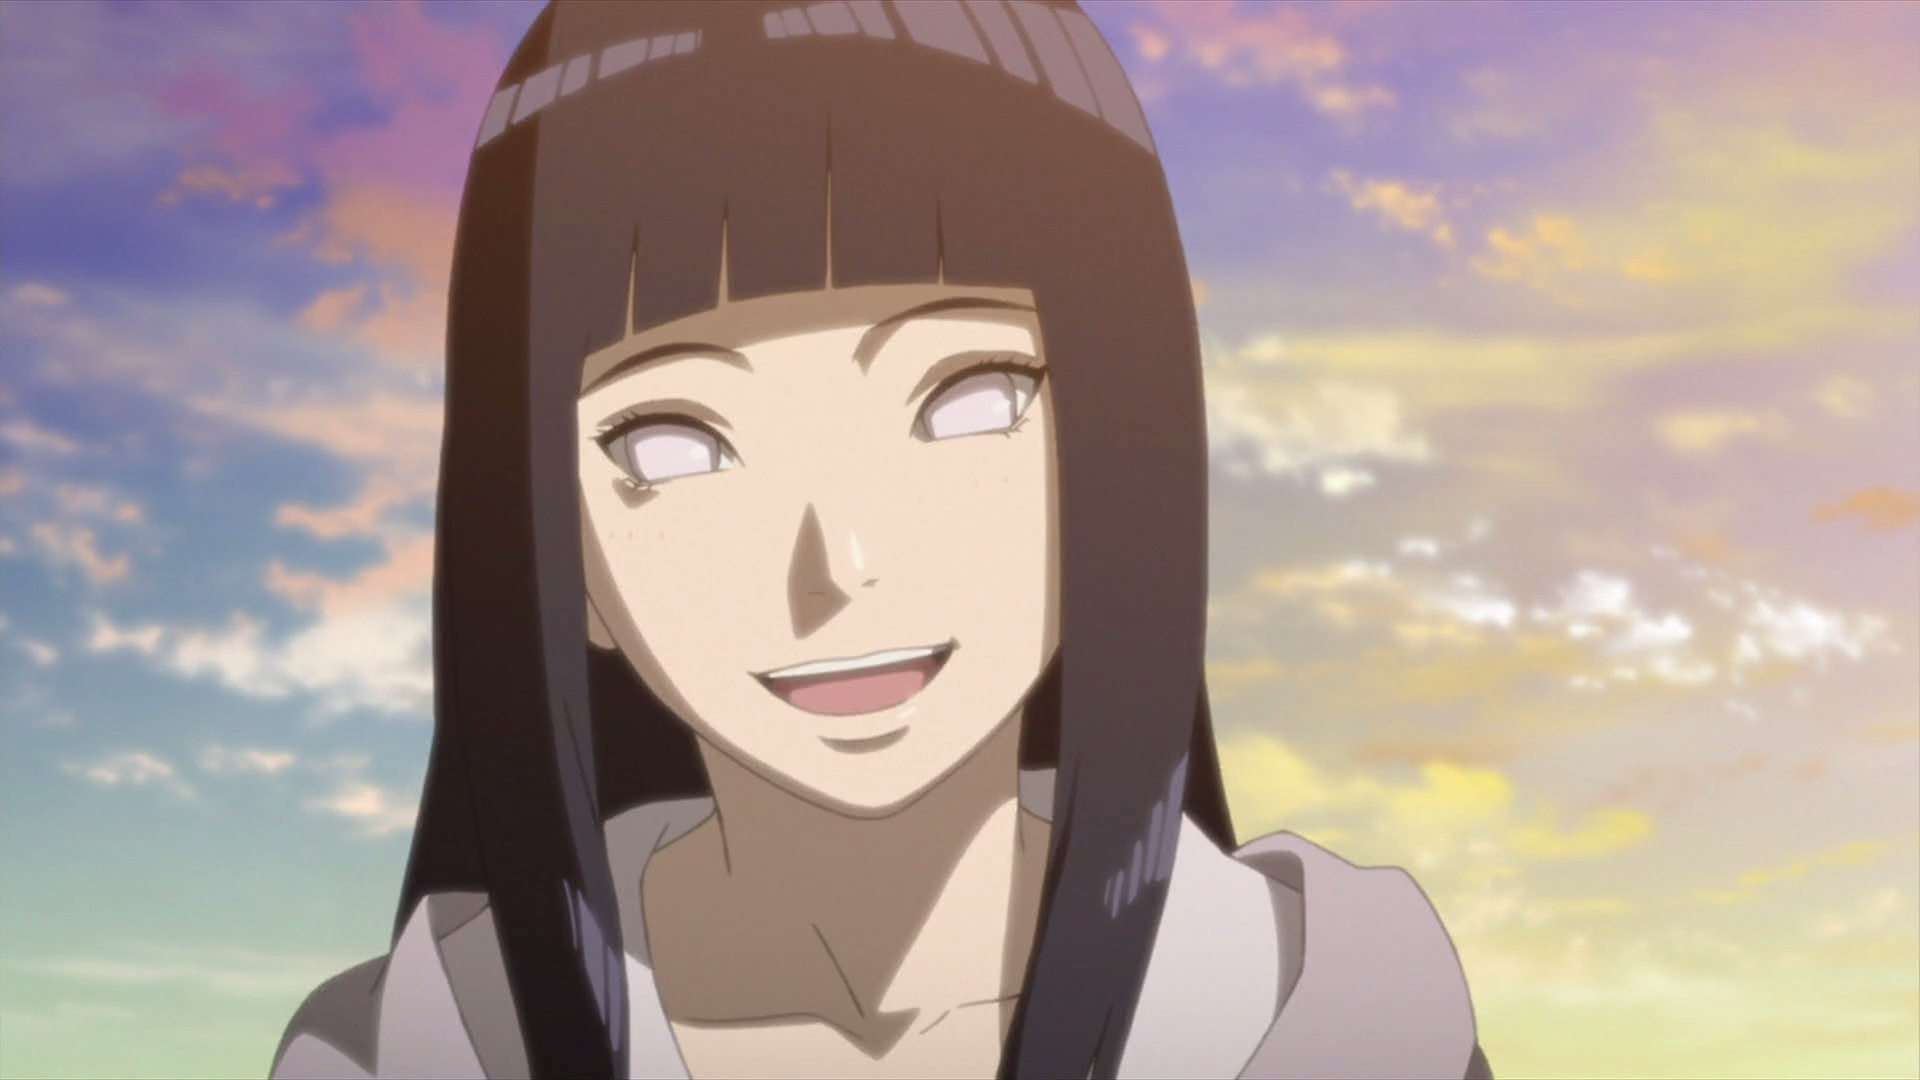 Hinata during sunset | Daily Anime Art